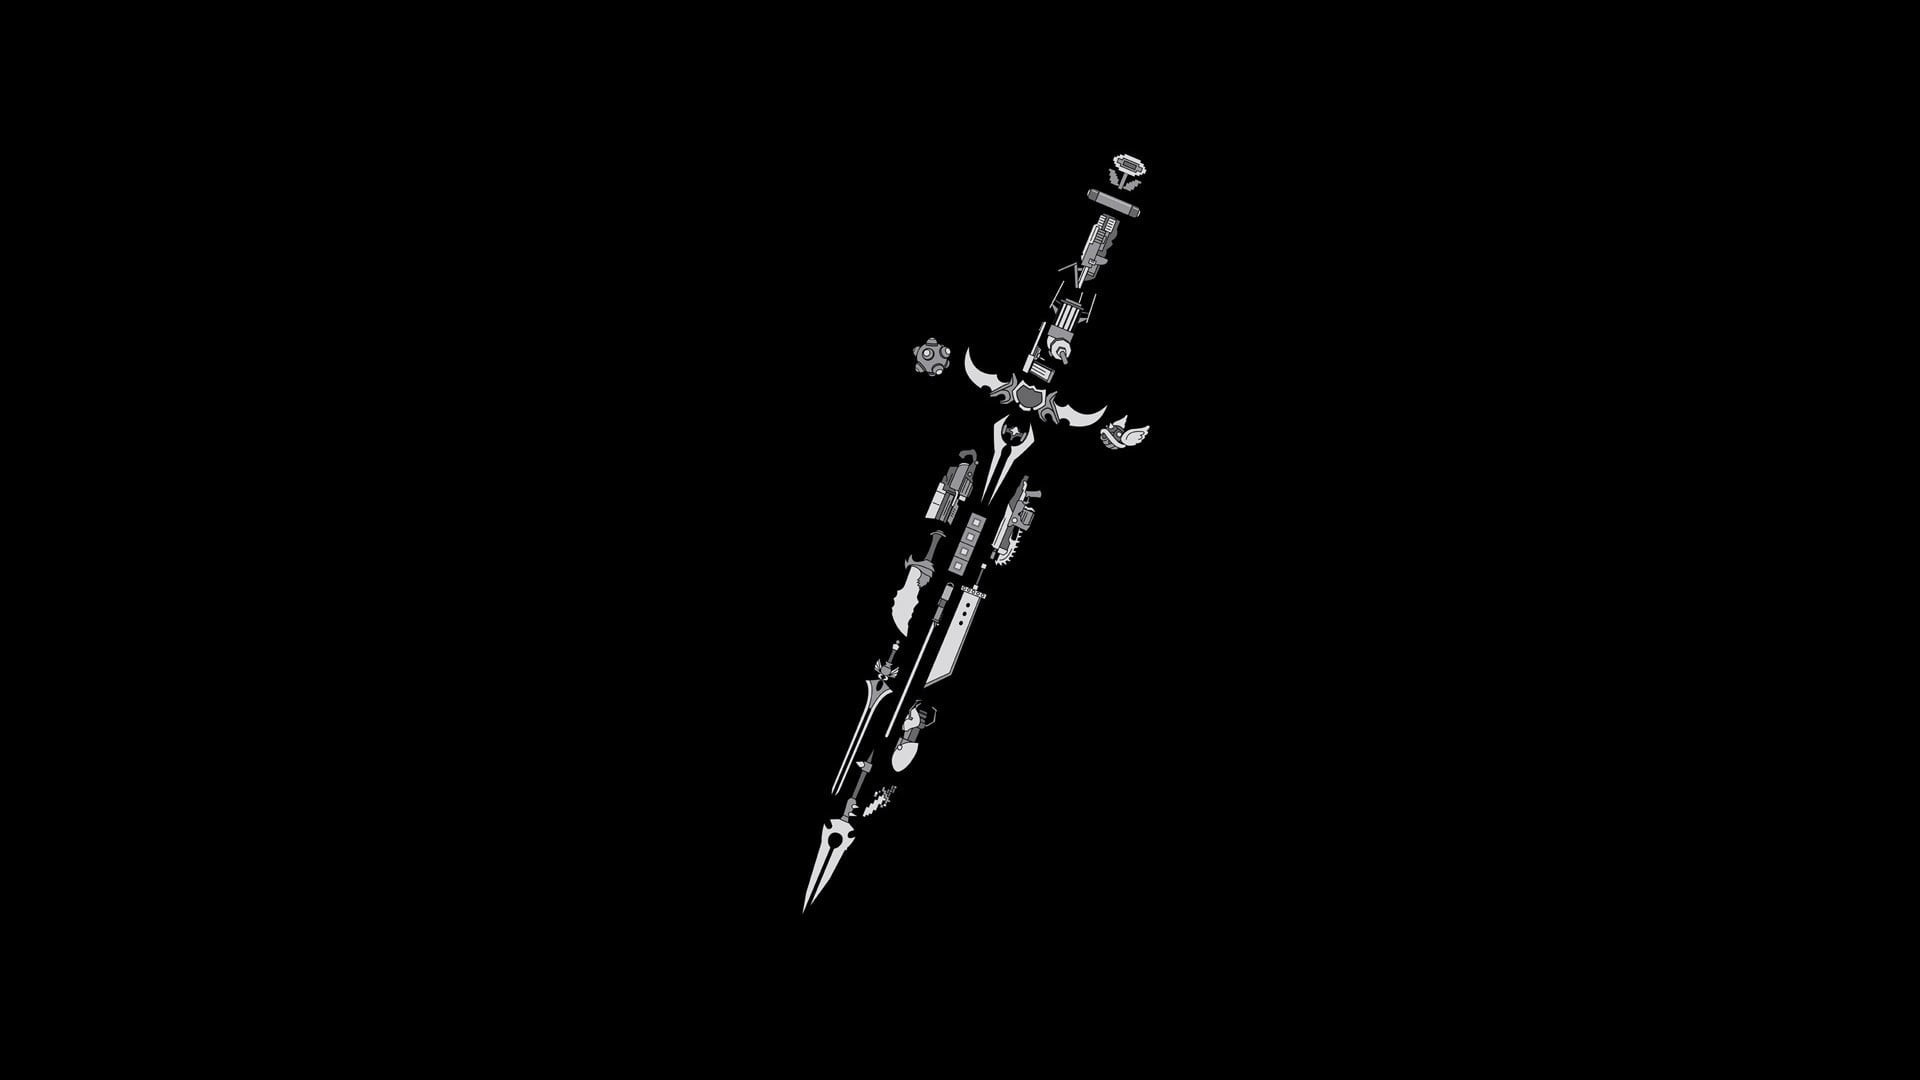 Black Sword Wallpapers 65 Background Pictures